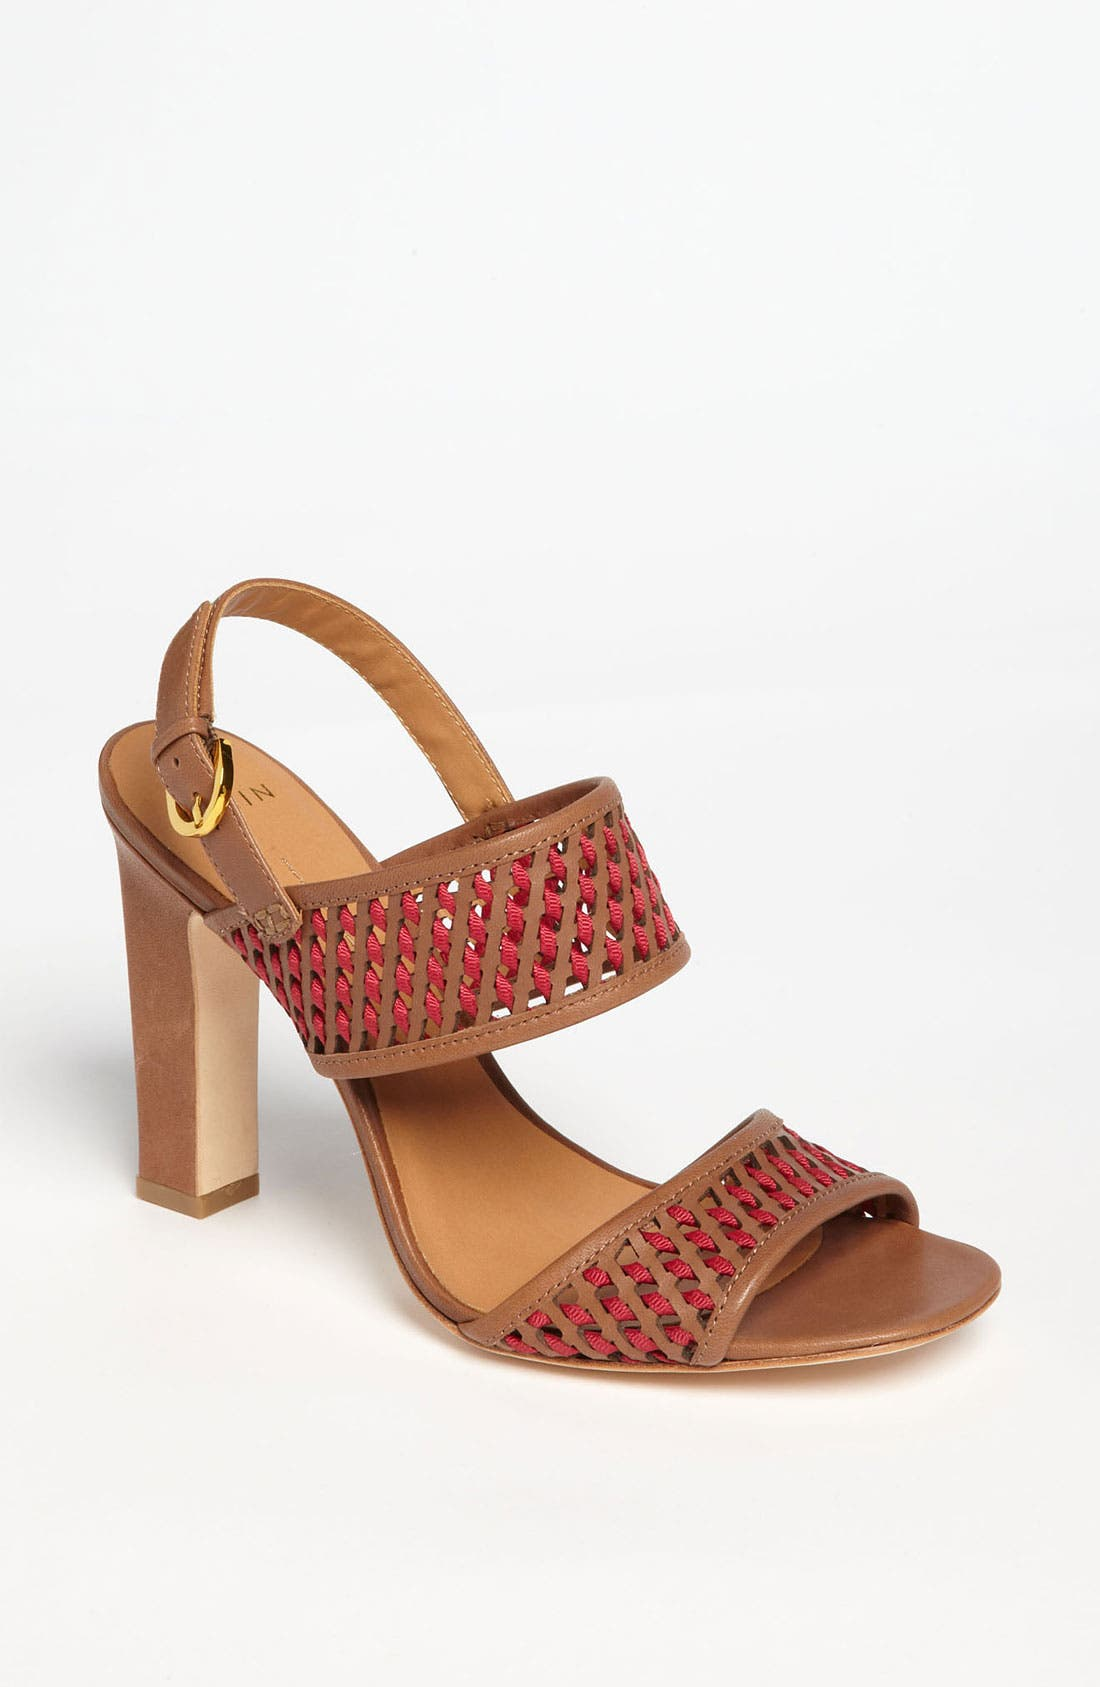 Alternate Image 1 Selected - Aerin 'Toiny' Sandal